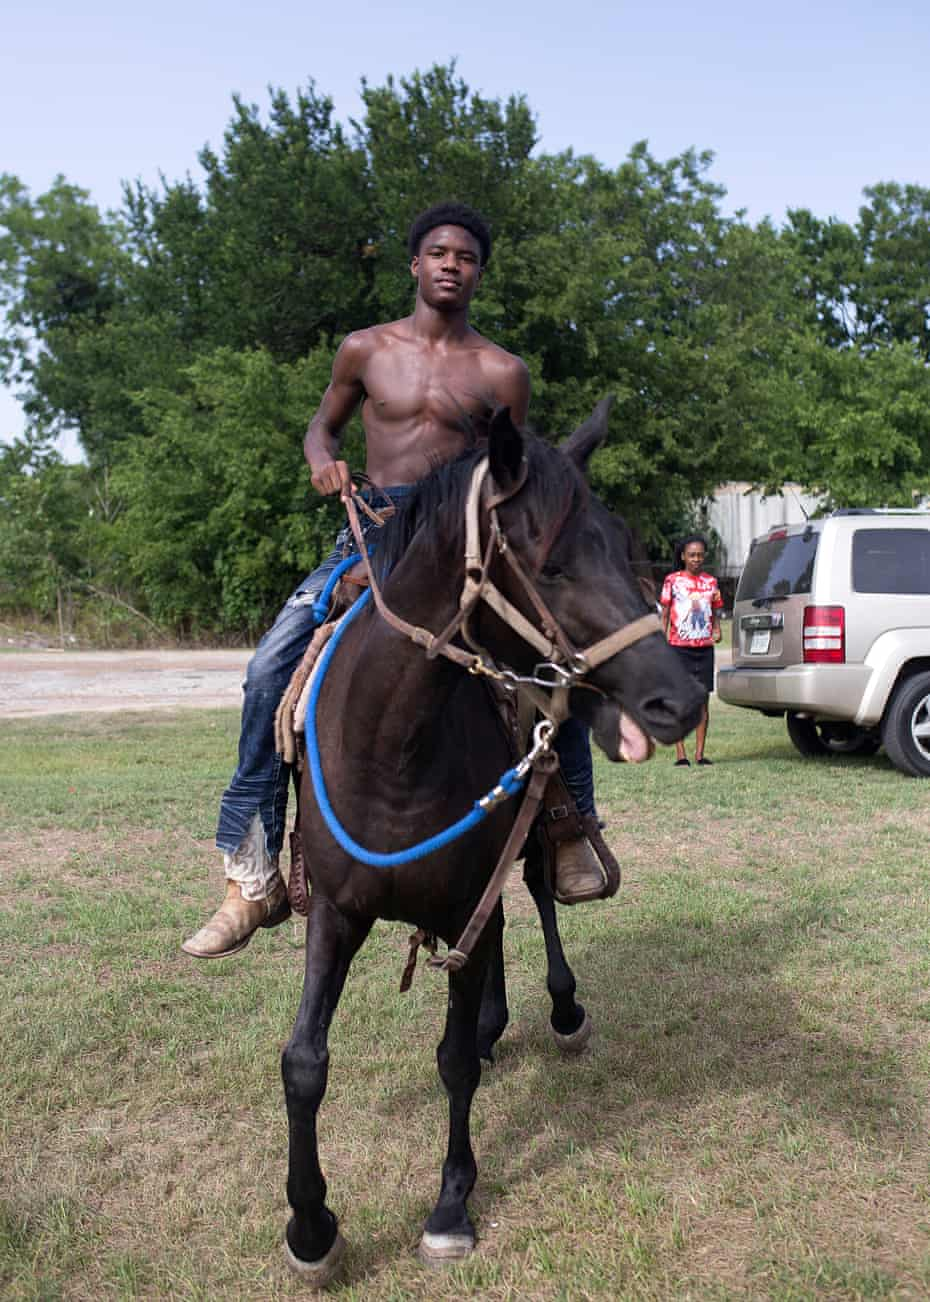 Blay Jay sits on his horse at the trail ride before the activities start.